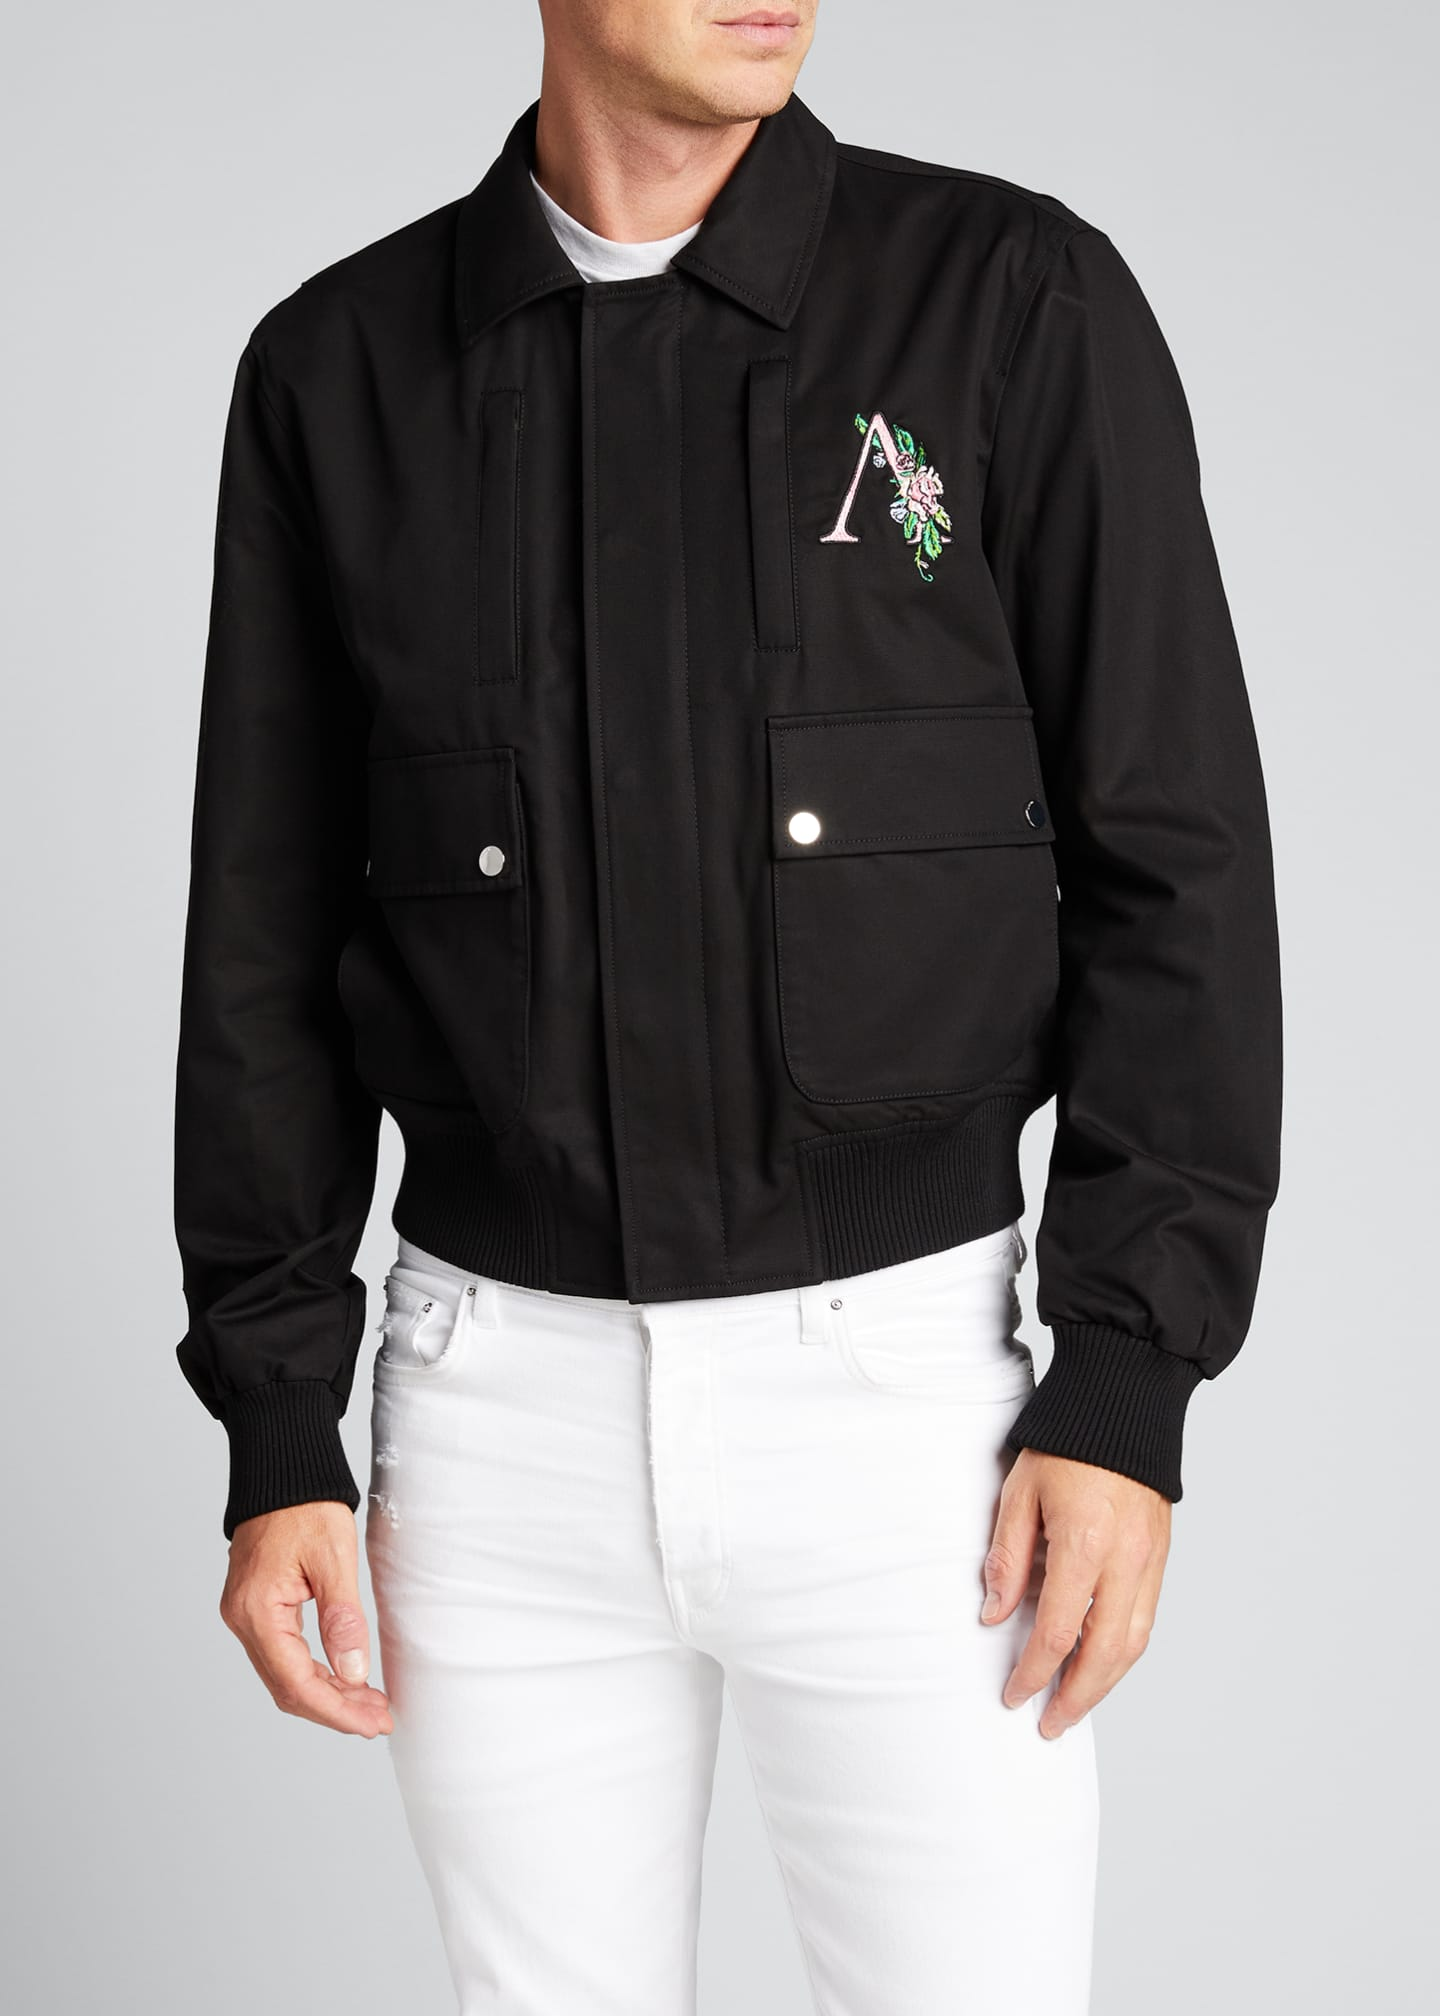 Image 3 of 5: Men's Floral Logo 4-Pocket Jacket